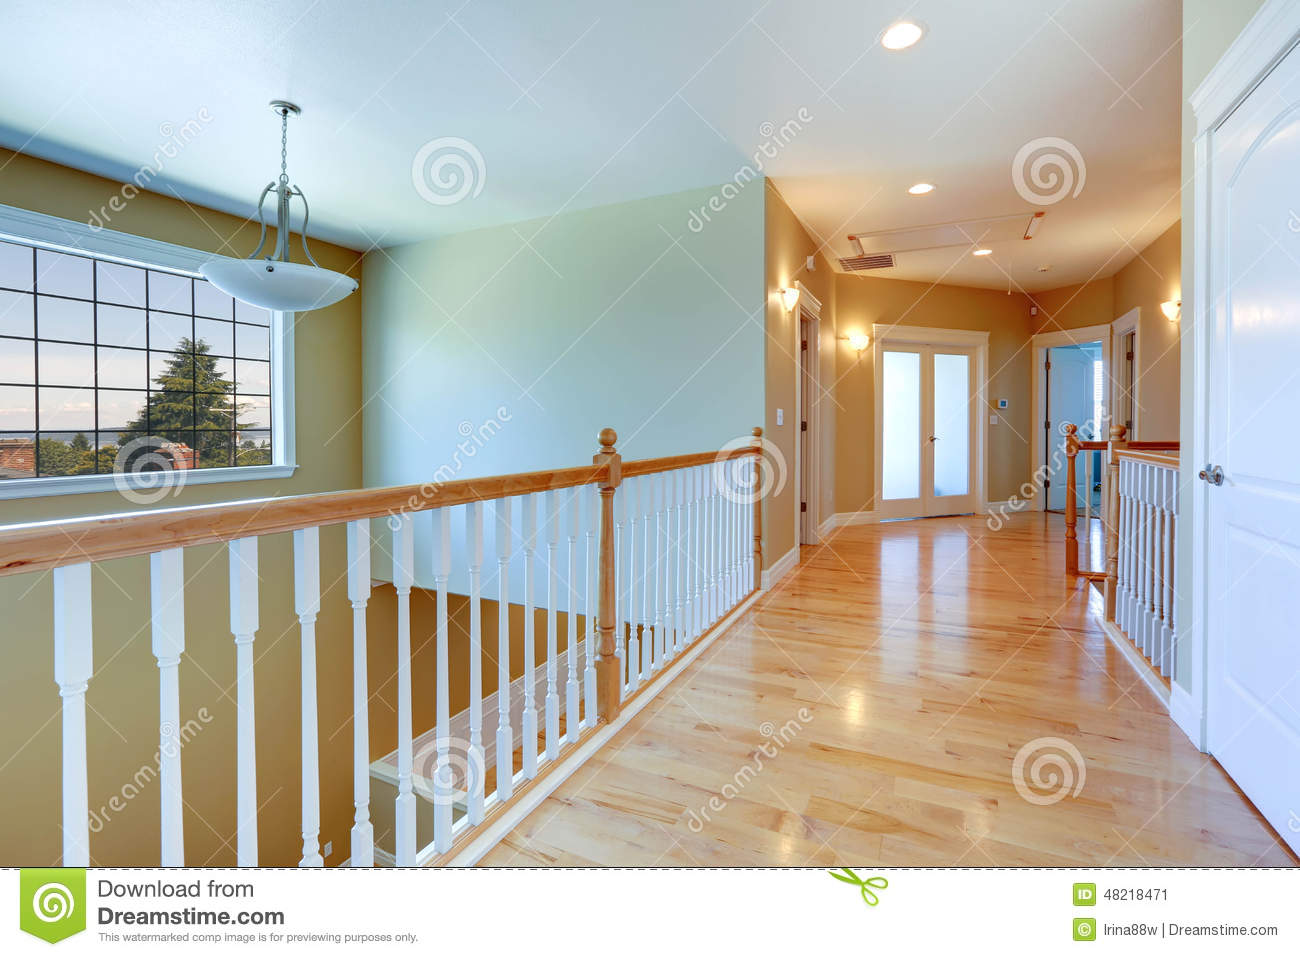 Upstairs hallway with railings stock image image of for Hallway photos